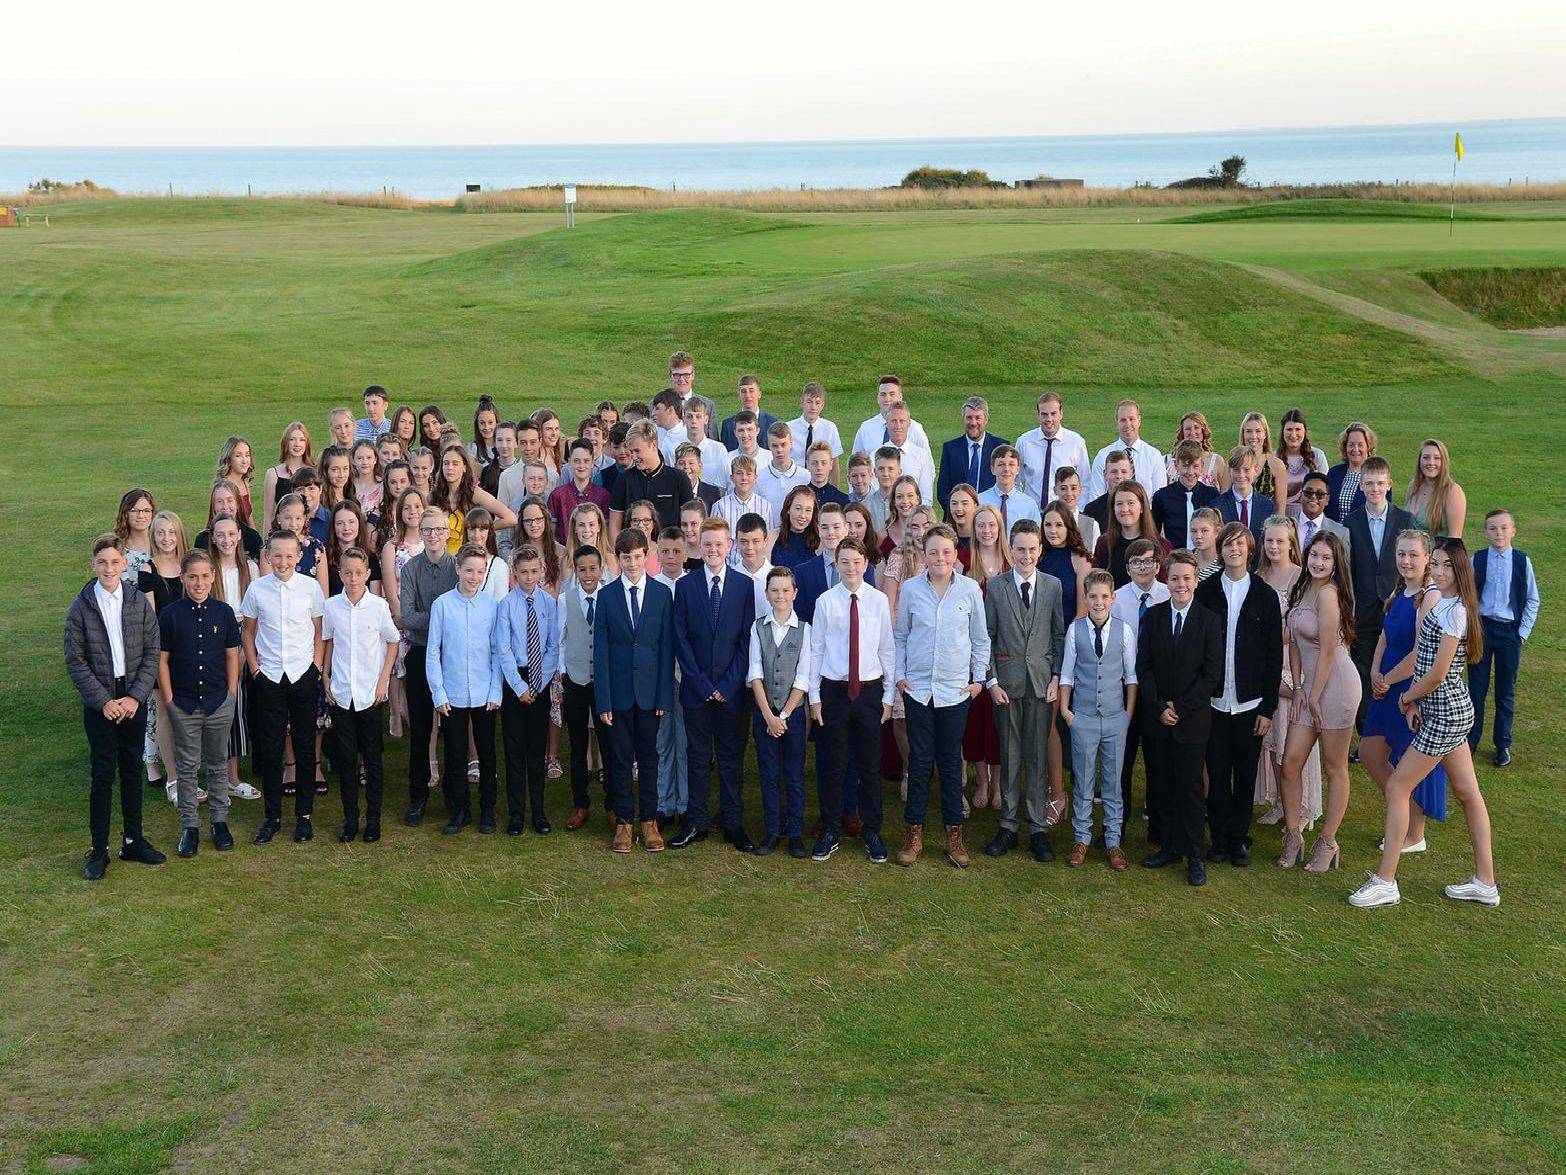 2019 Headlands School Sports Awards Evening held at the Links Golf Club Bridlington.'Pictures by Paul Atkinson: